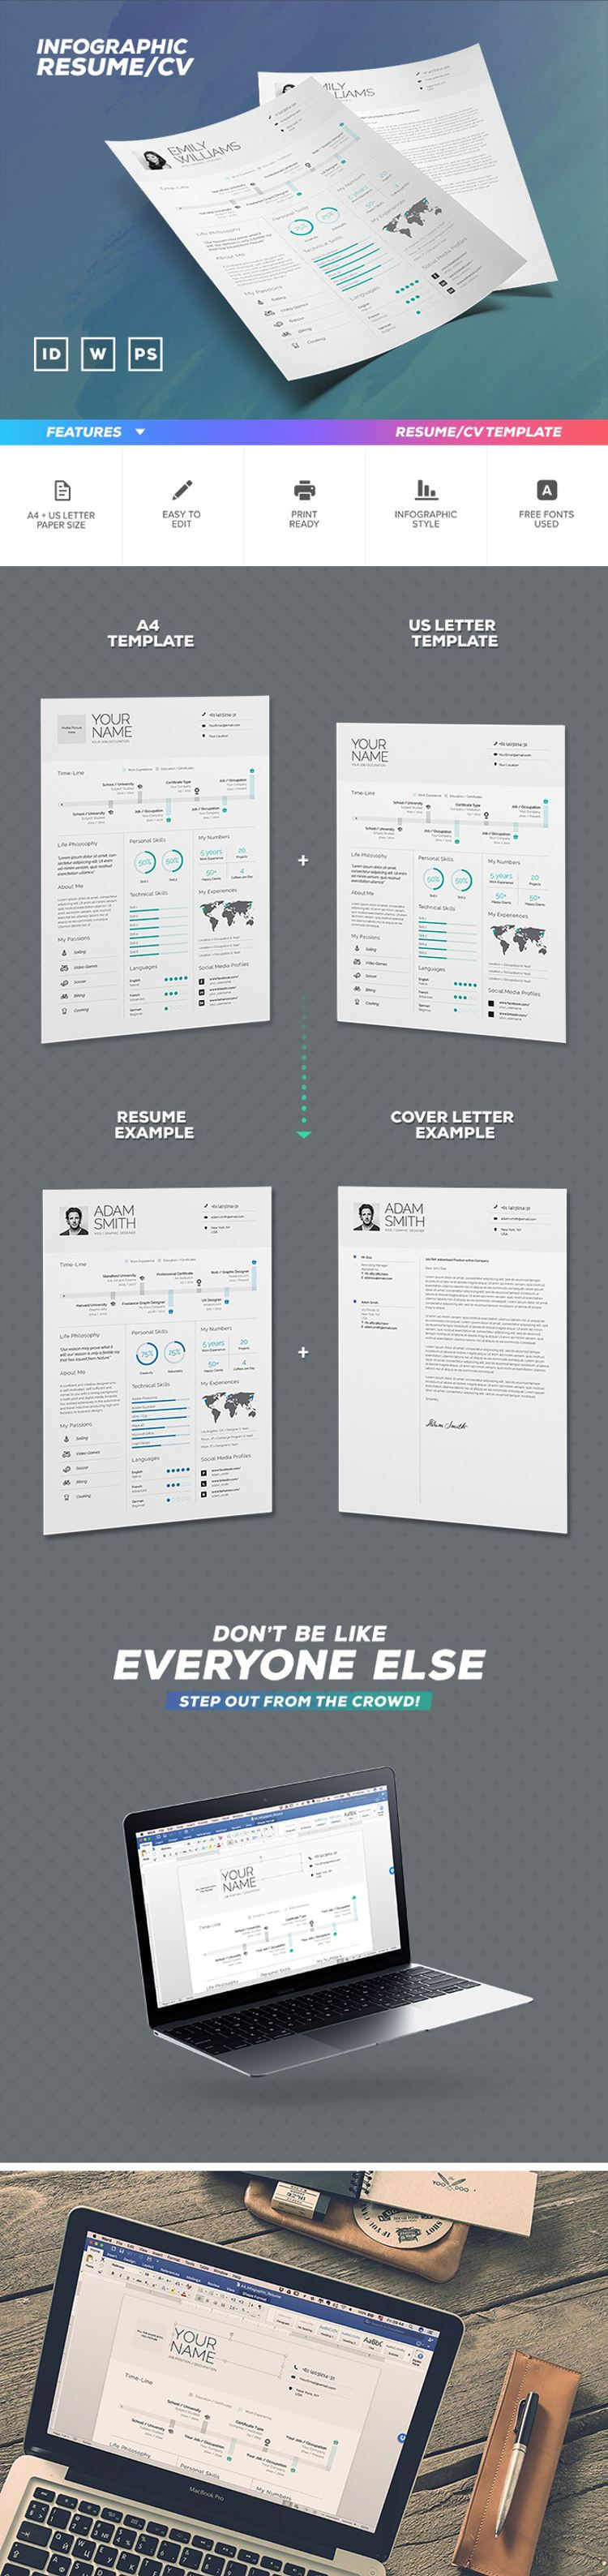 Infographic Resume/Cv Volume 5 by paolo6180 on Envato